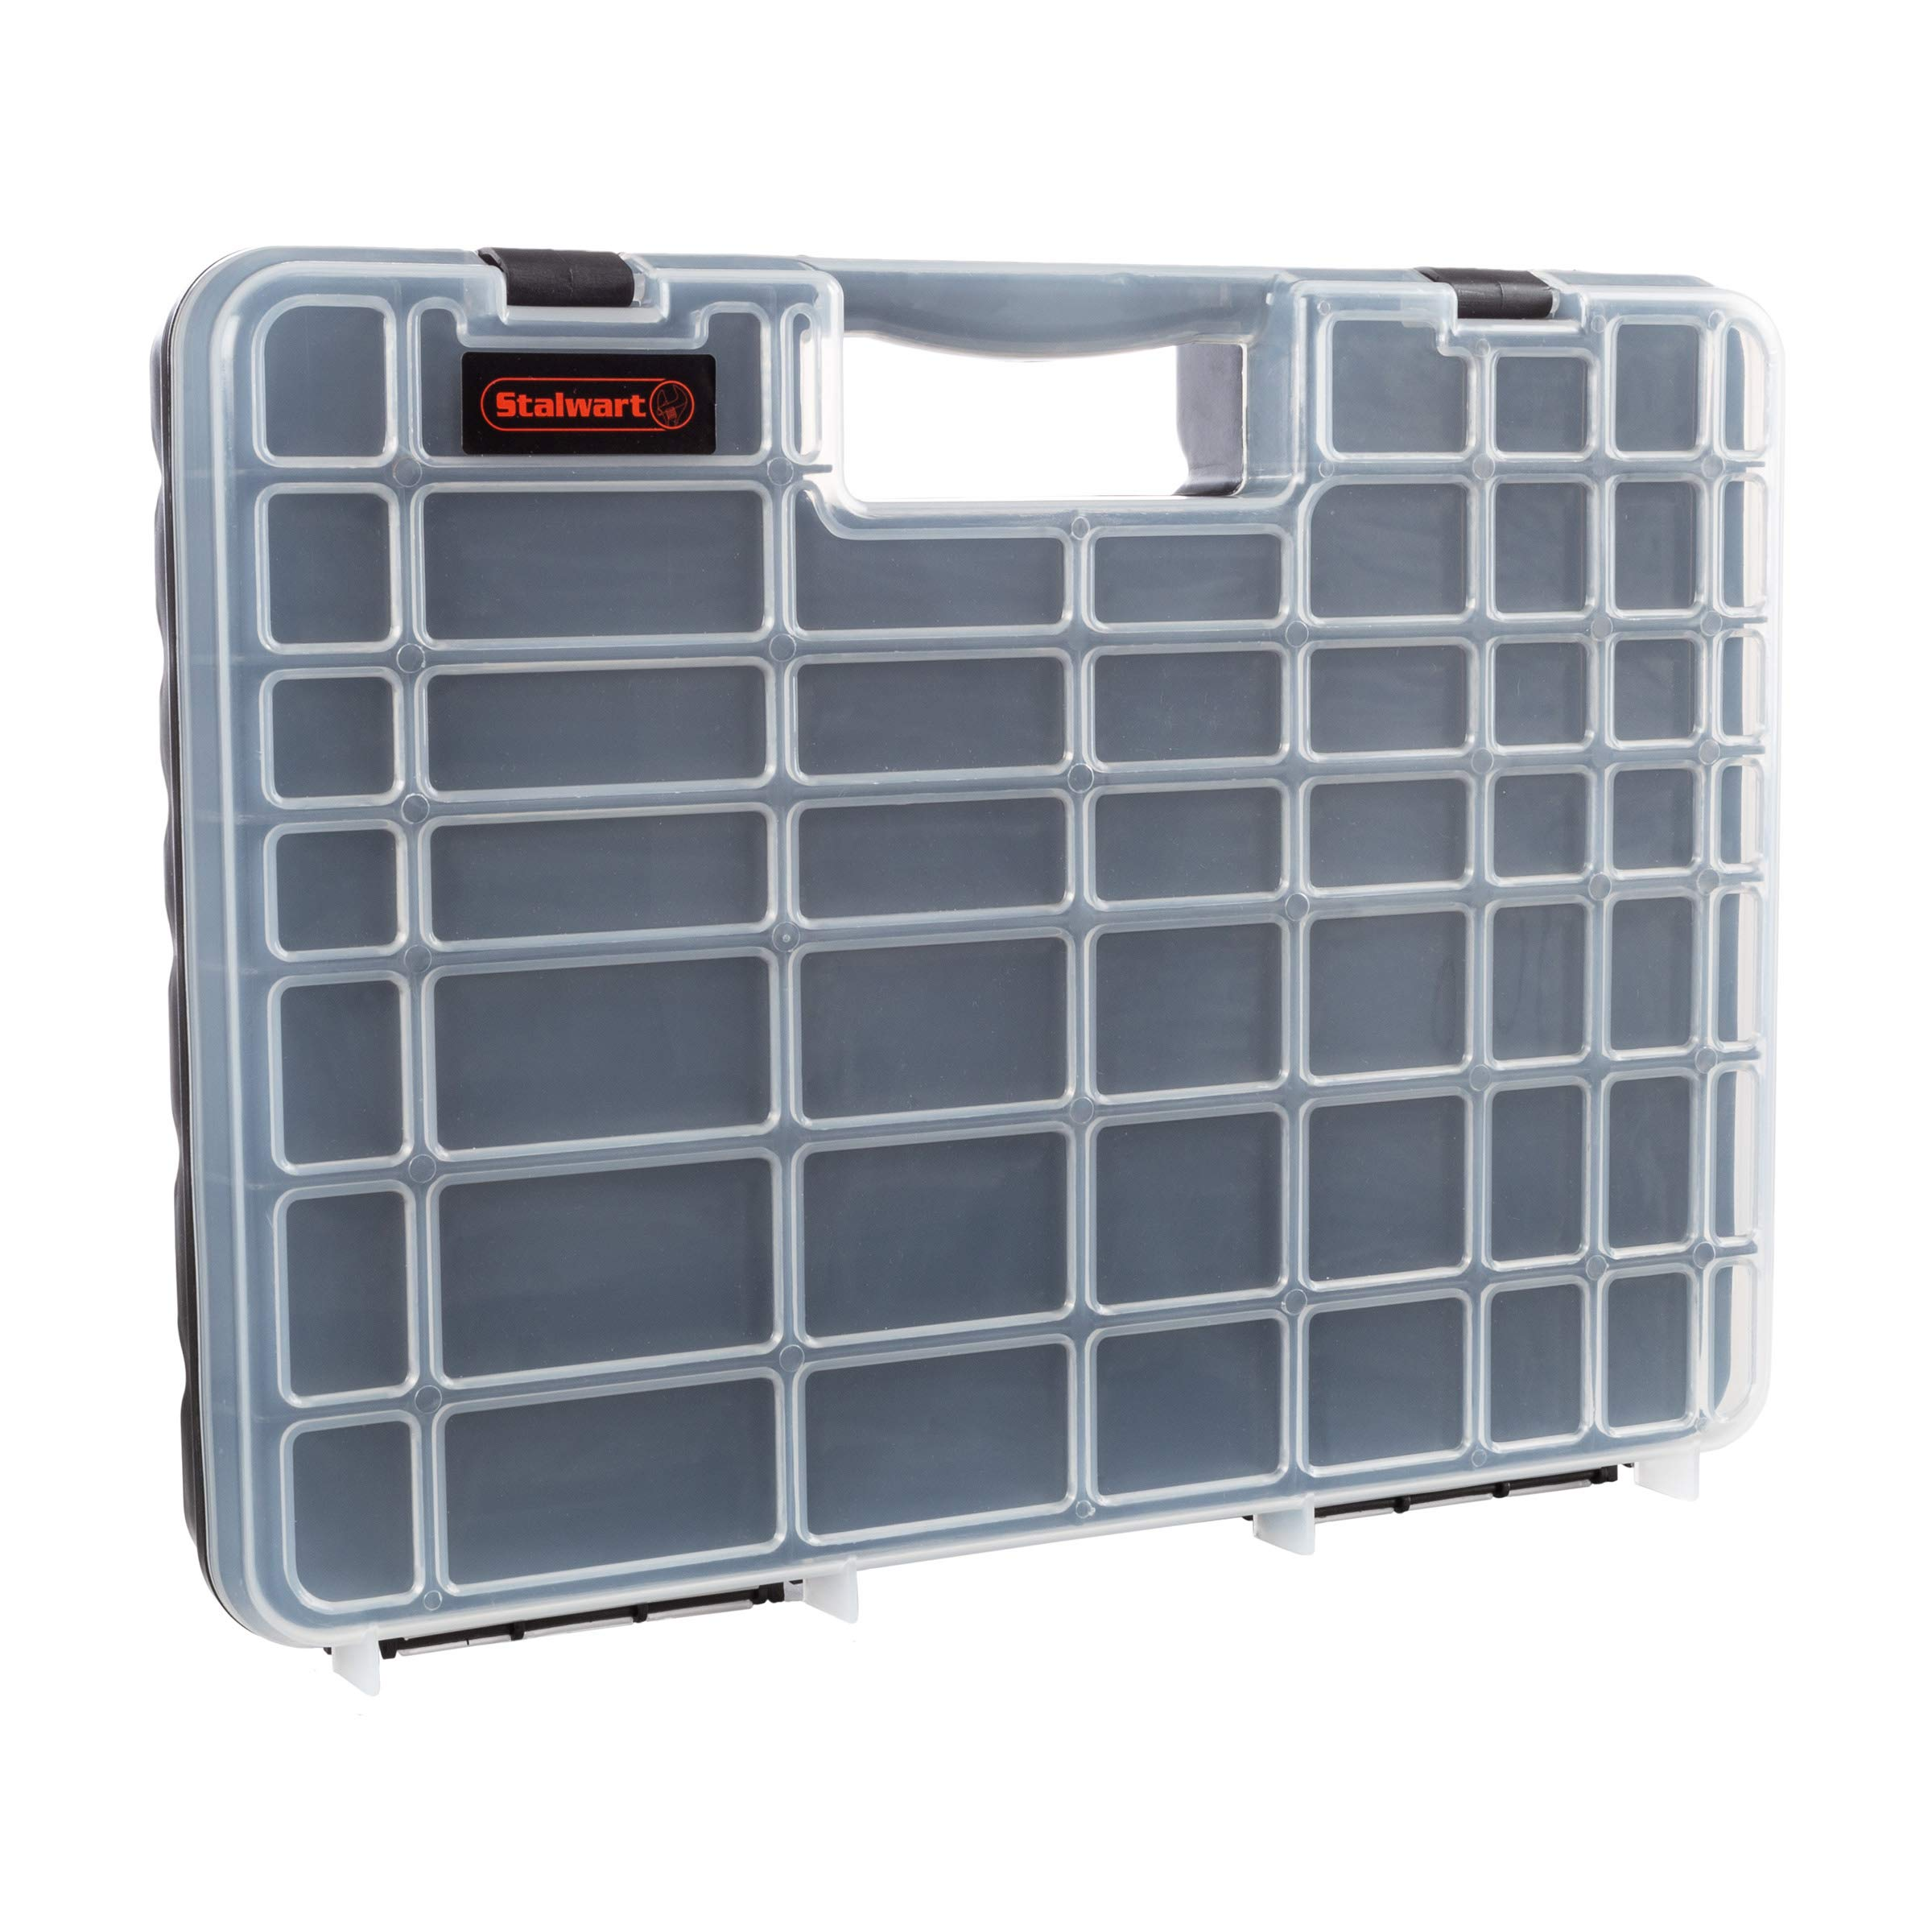 Portable Storage Case with Secure Locks and 55 Small Bin Compartments for Hardware, Screws, Bolts, Nuts, Nails, Beads, Jewelry and More by Stalwart by Stalwart